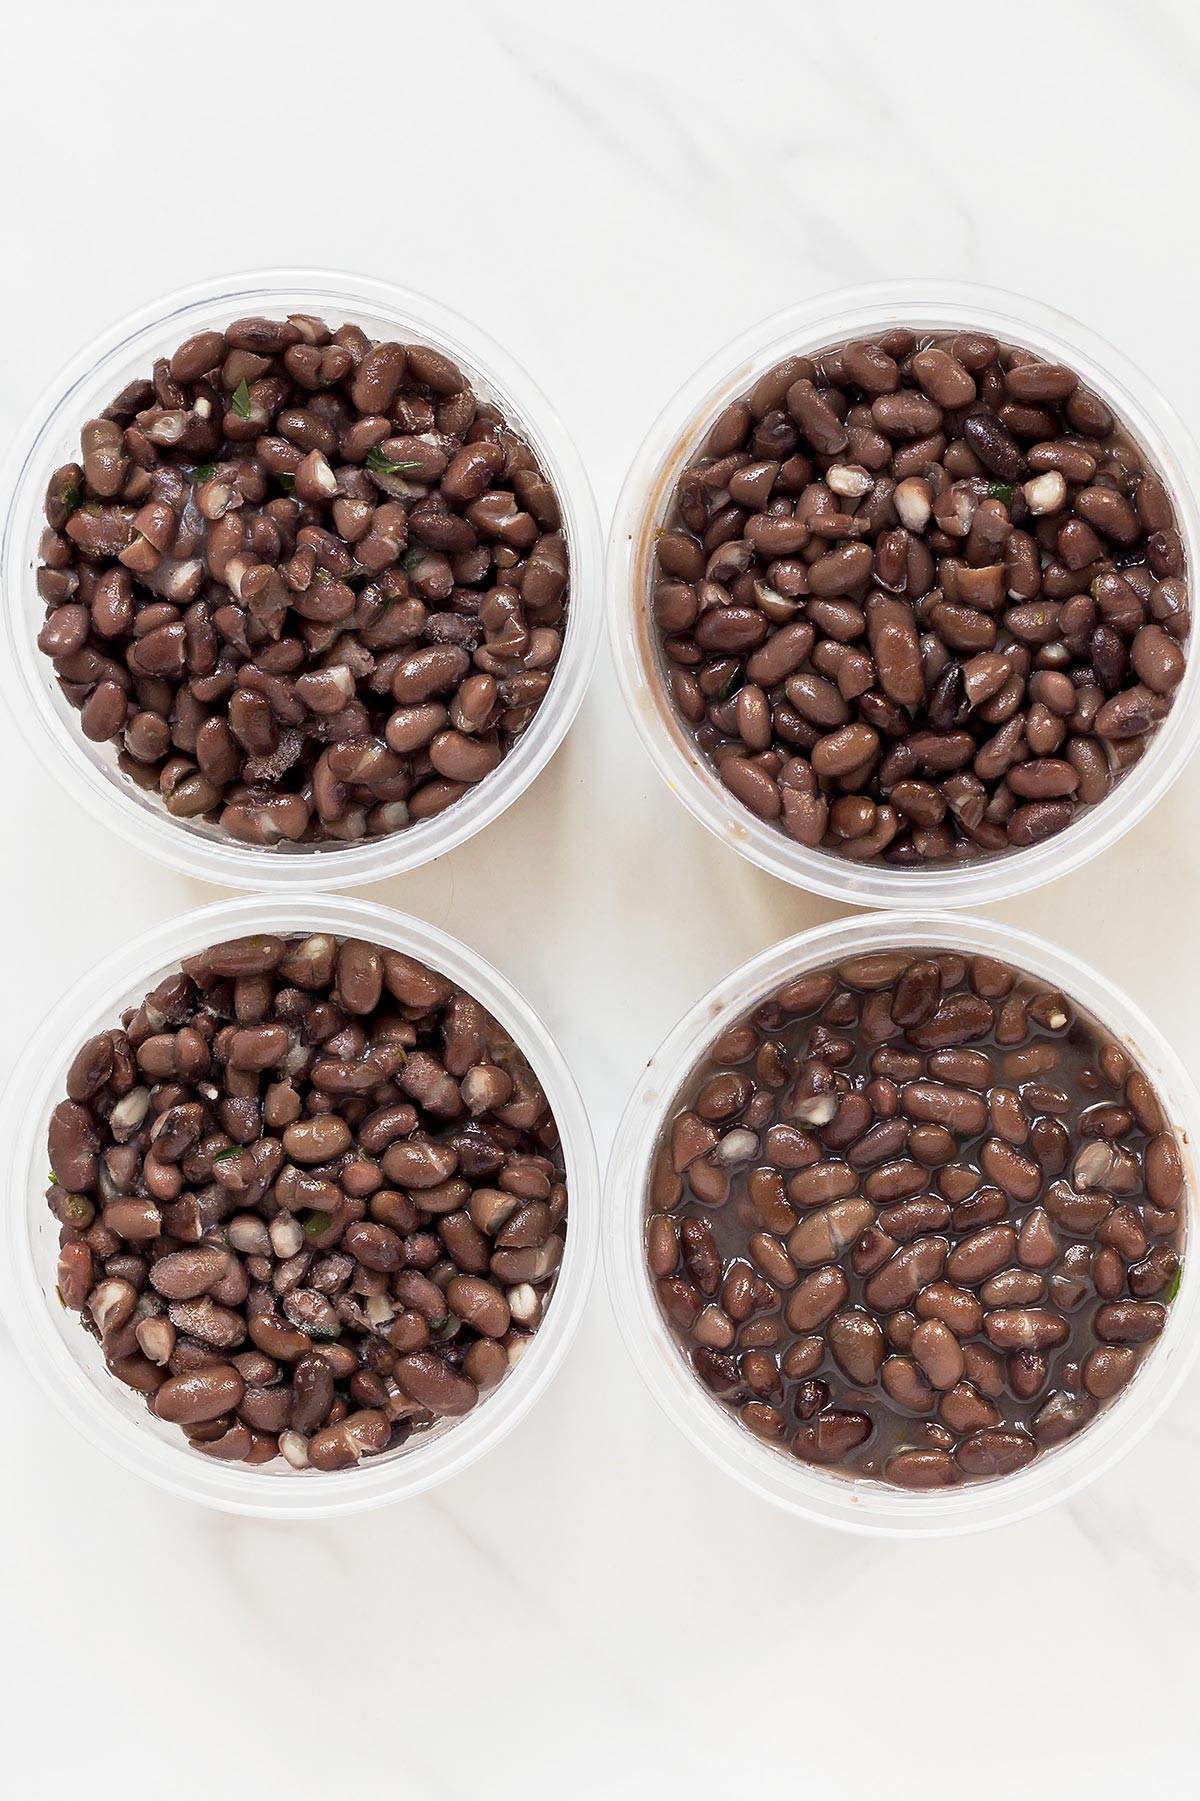 Black Beans in 4 storage containers